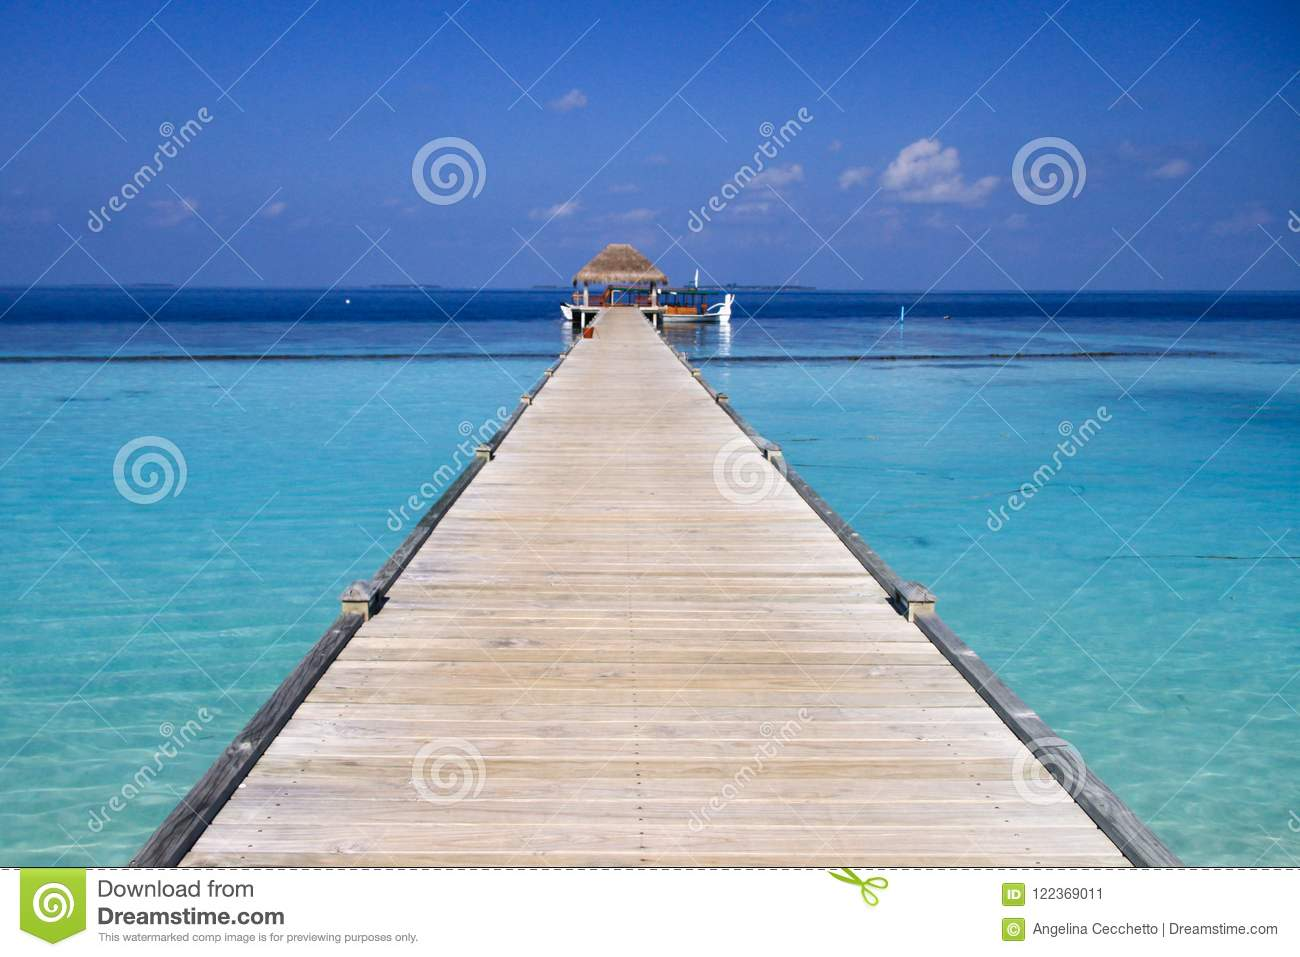 Maldives Island Resort Wood Pier and Turquoise Pacific Ocean Water.